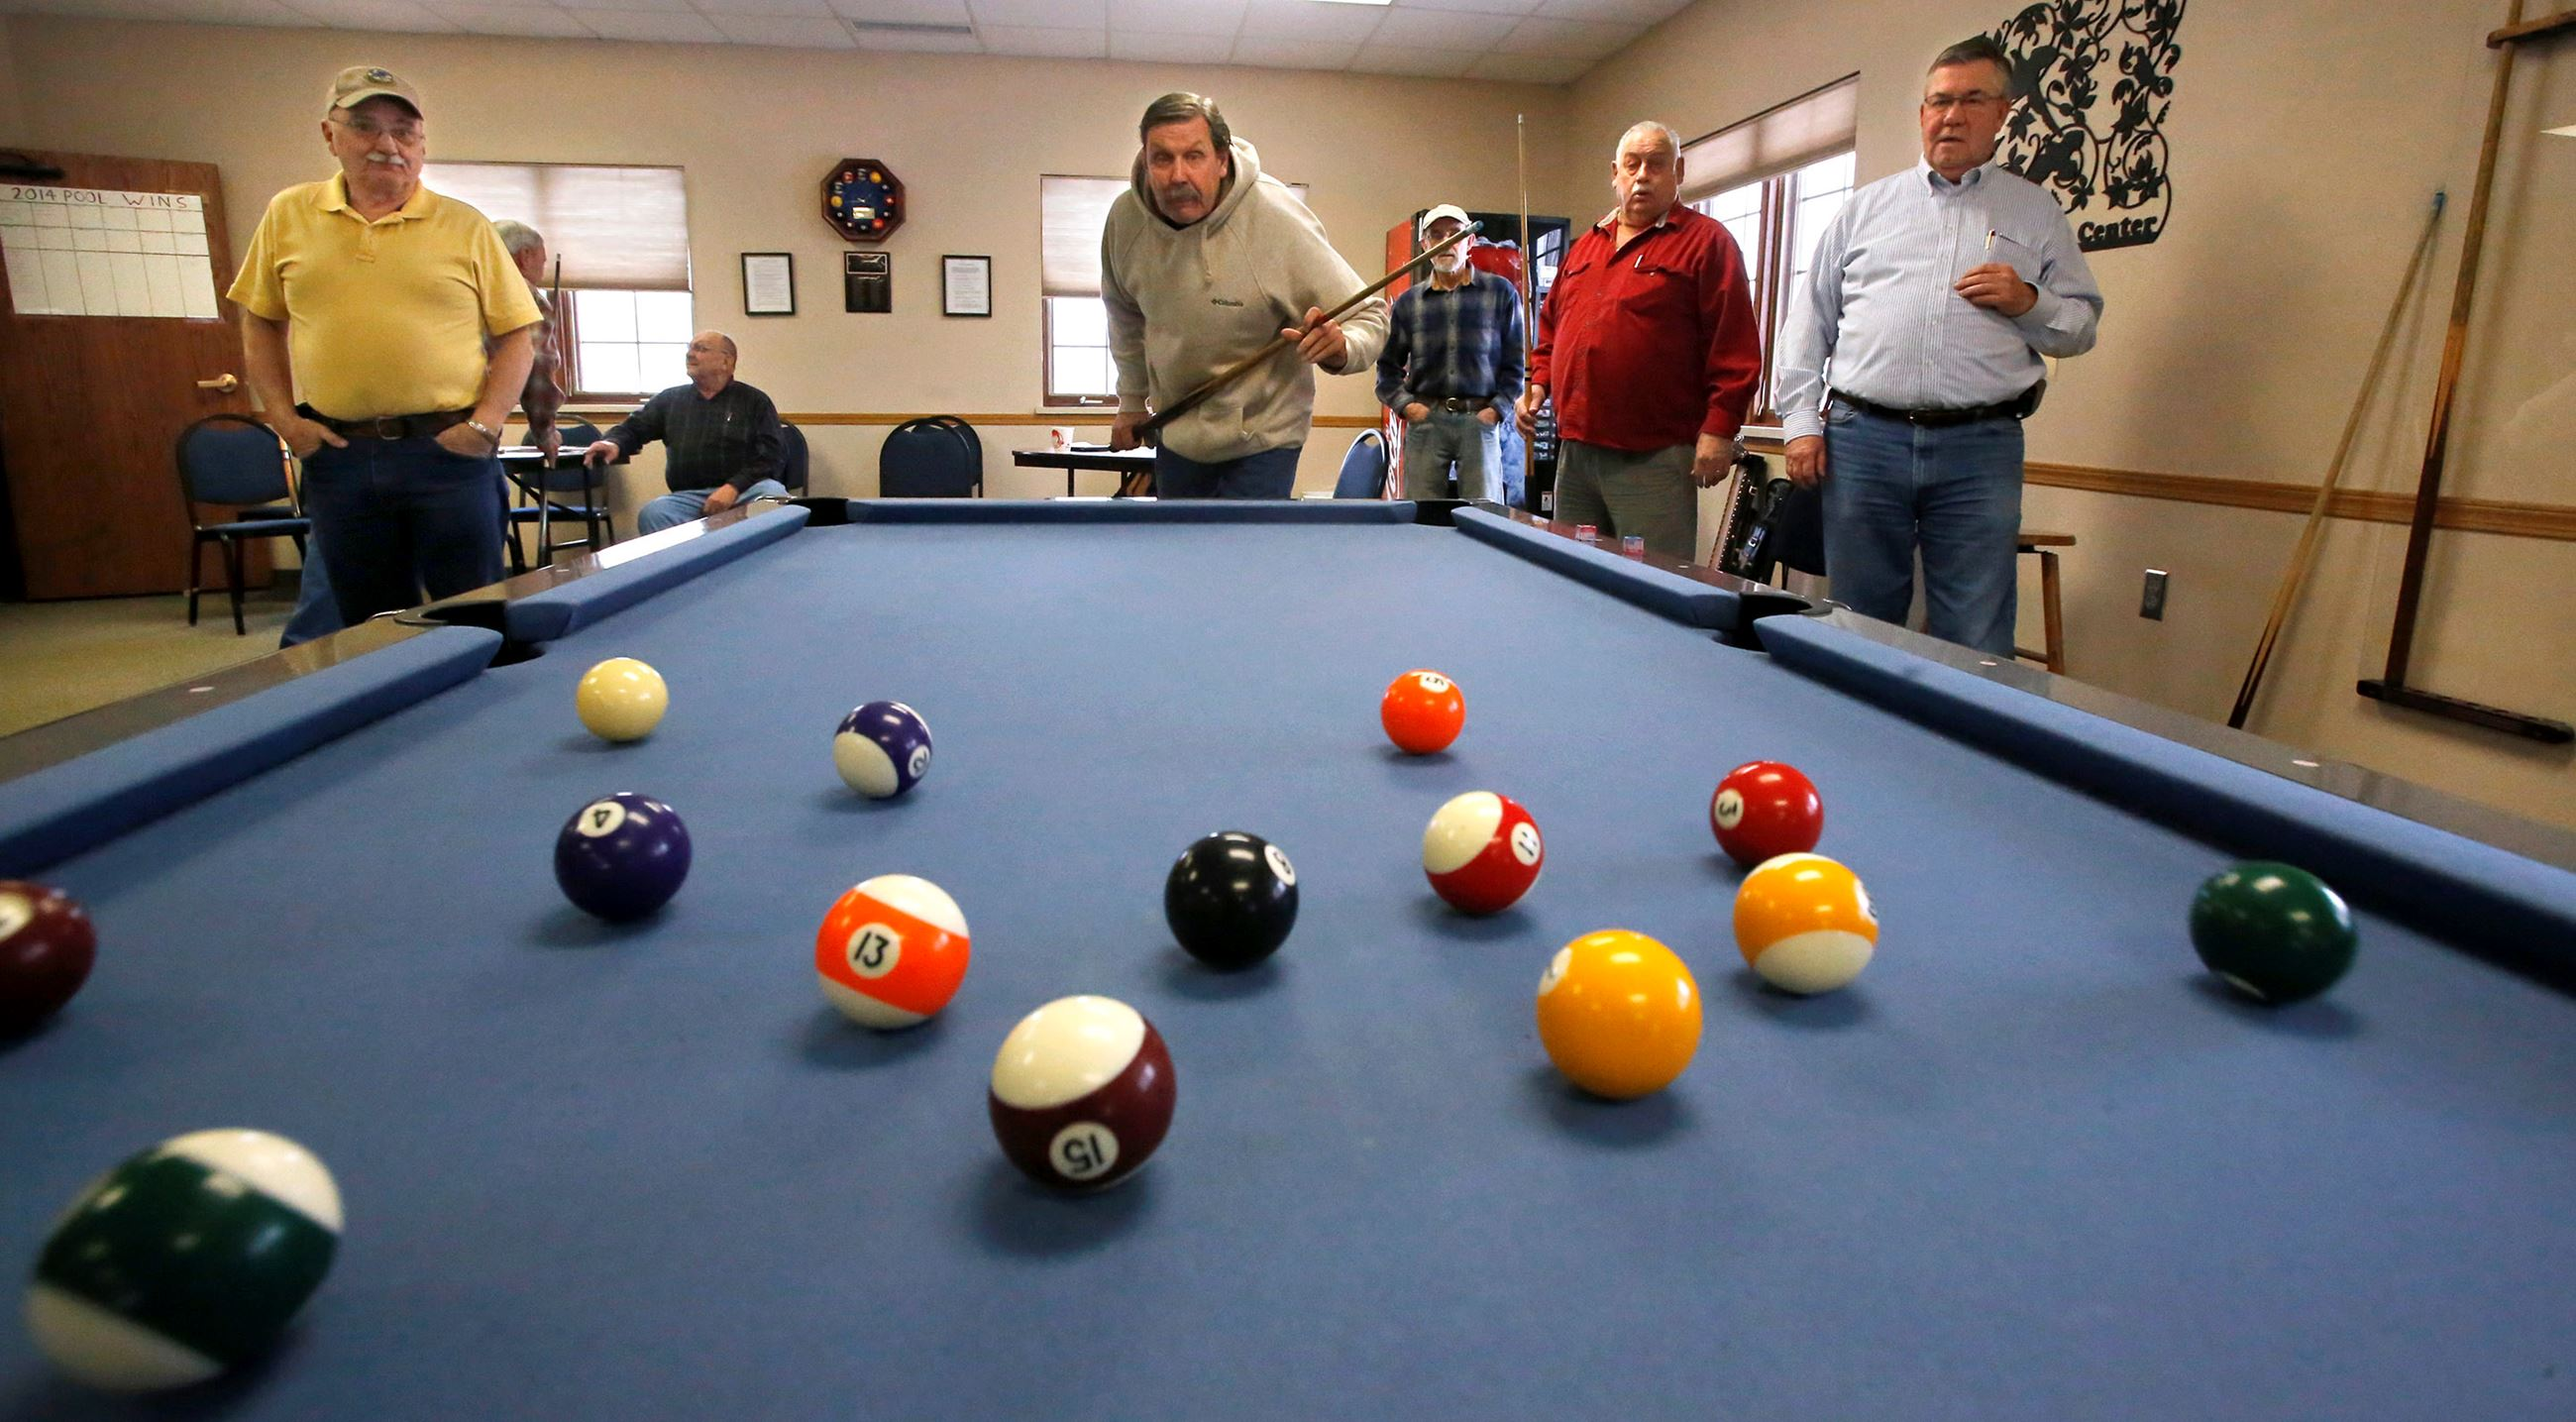 Senior Center Members playing a of pool